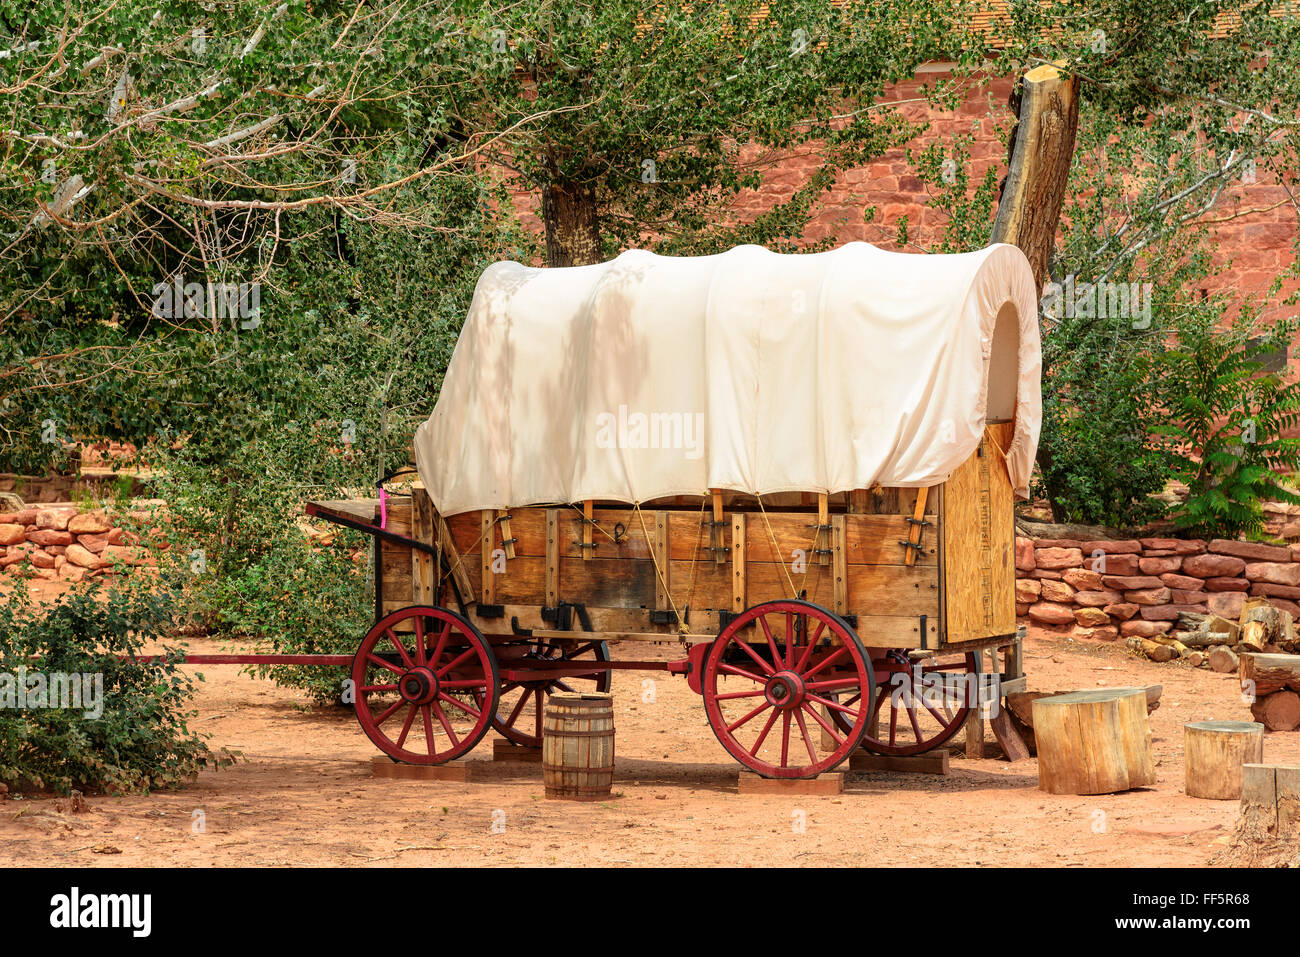 Nice old covered wagon in the old West, Arizona - Stock Image